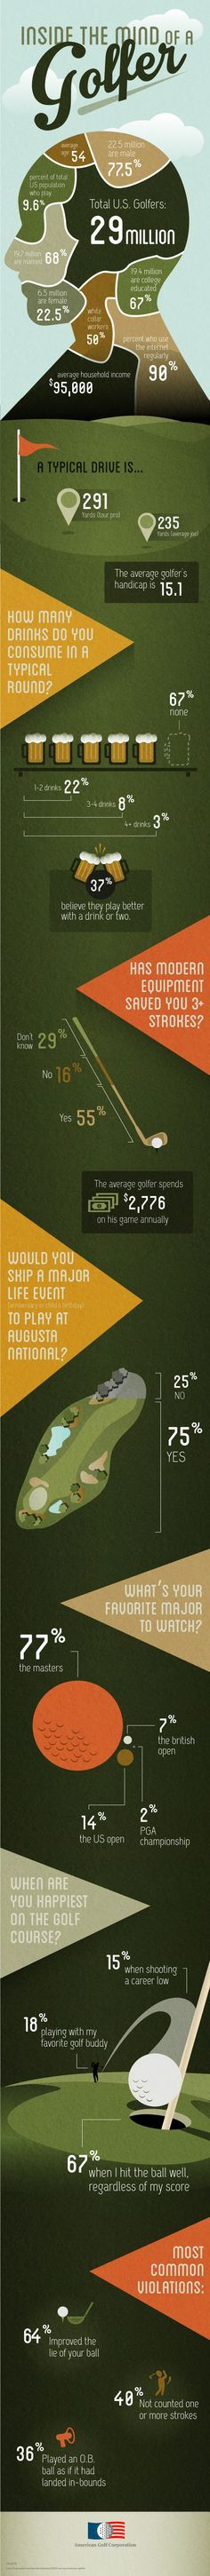 The Demographics of Golf Inside the Mind of a Golfer